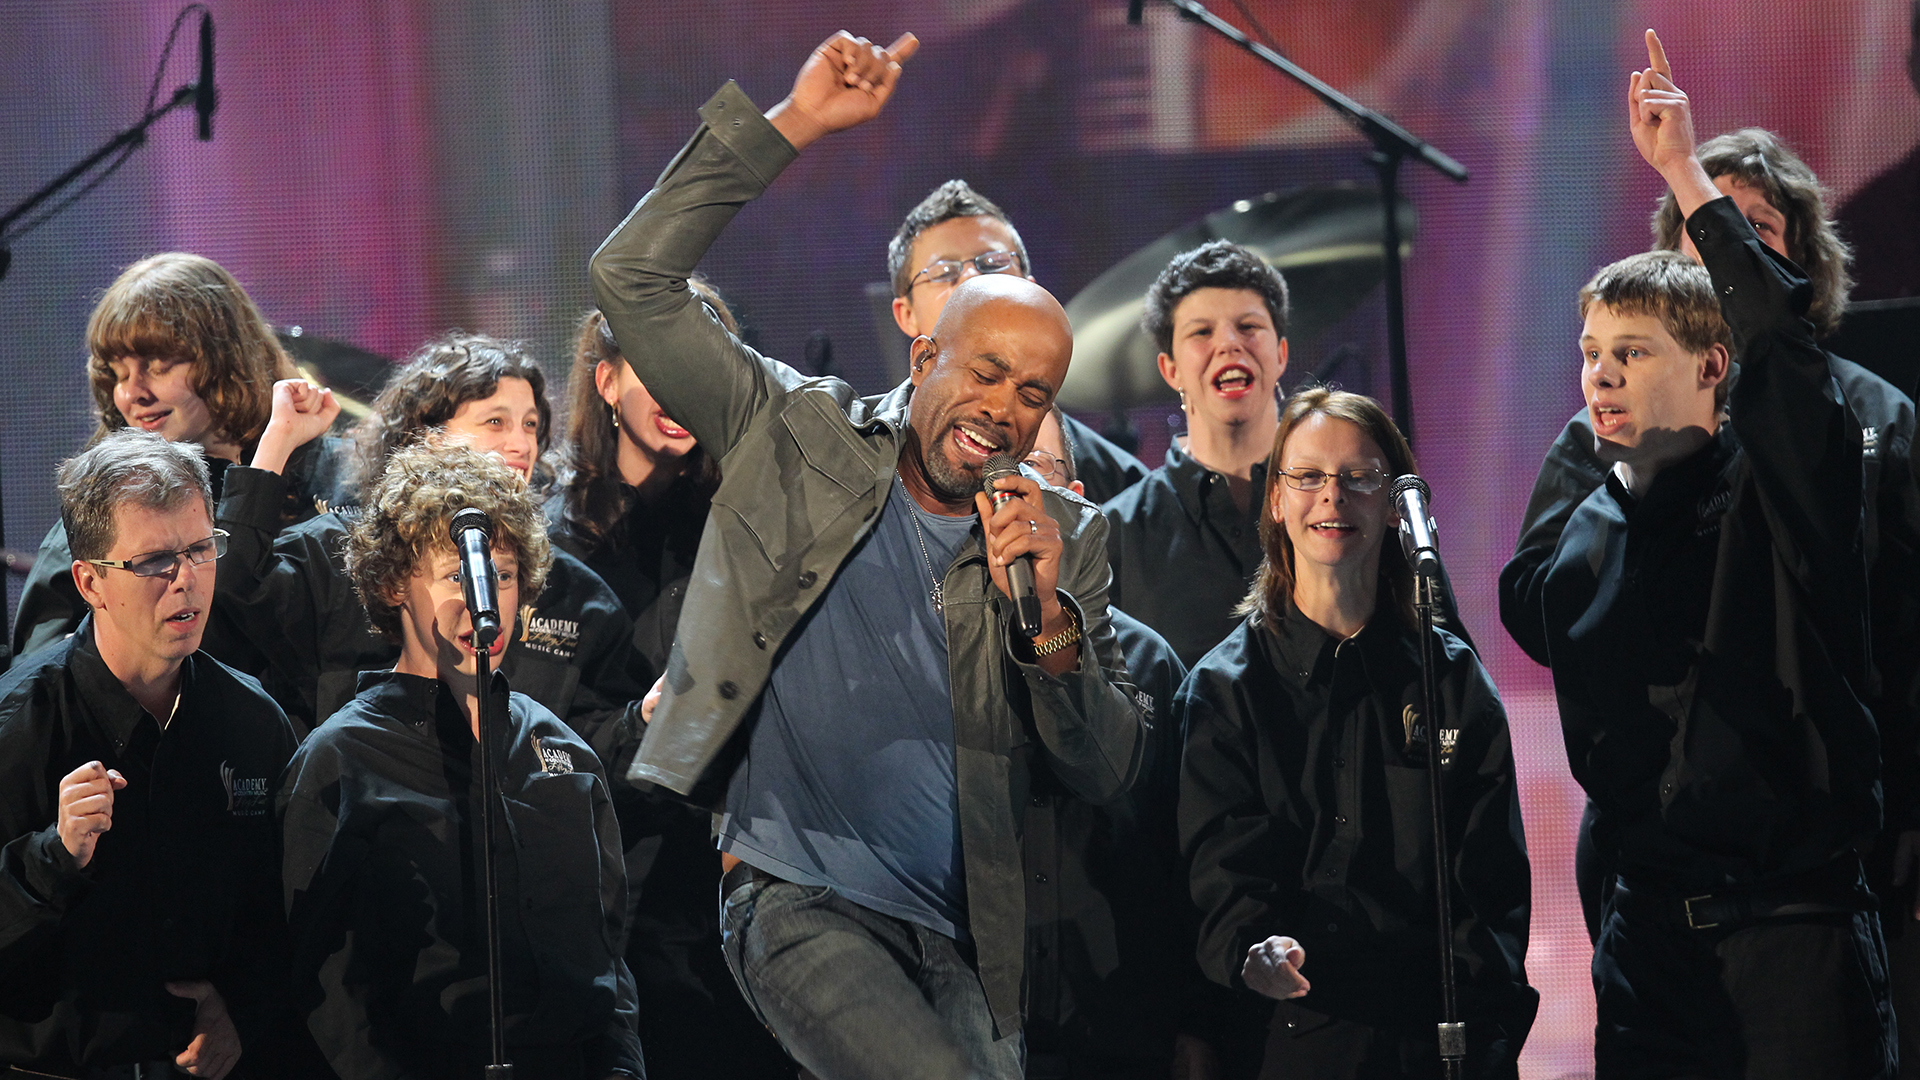 16. Darius Rucker performs